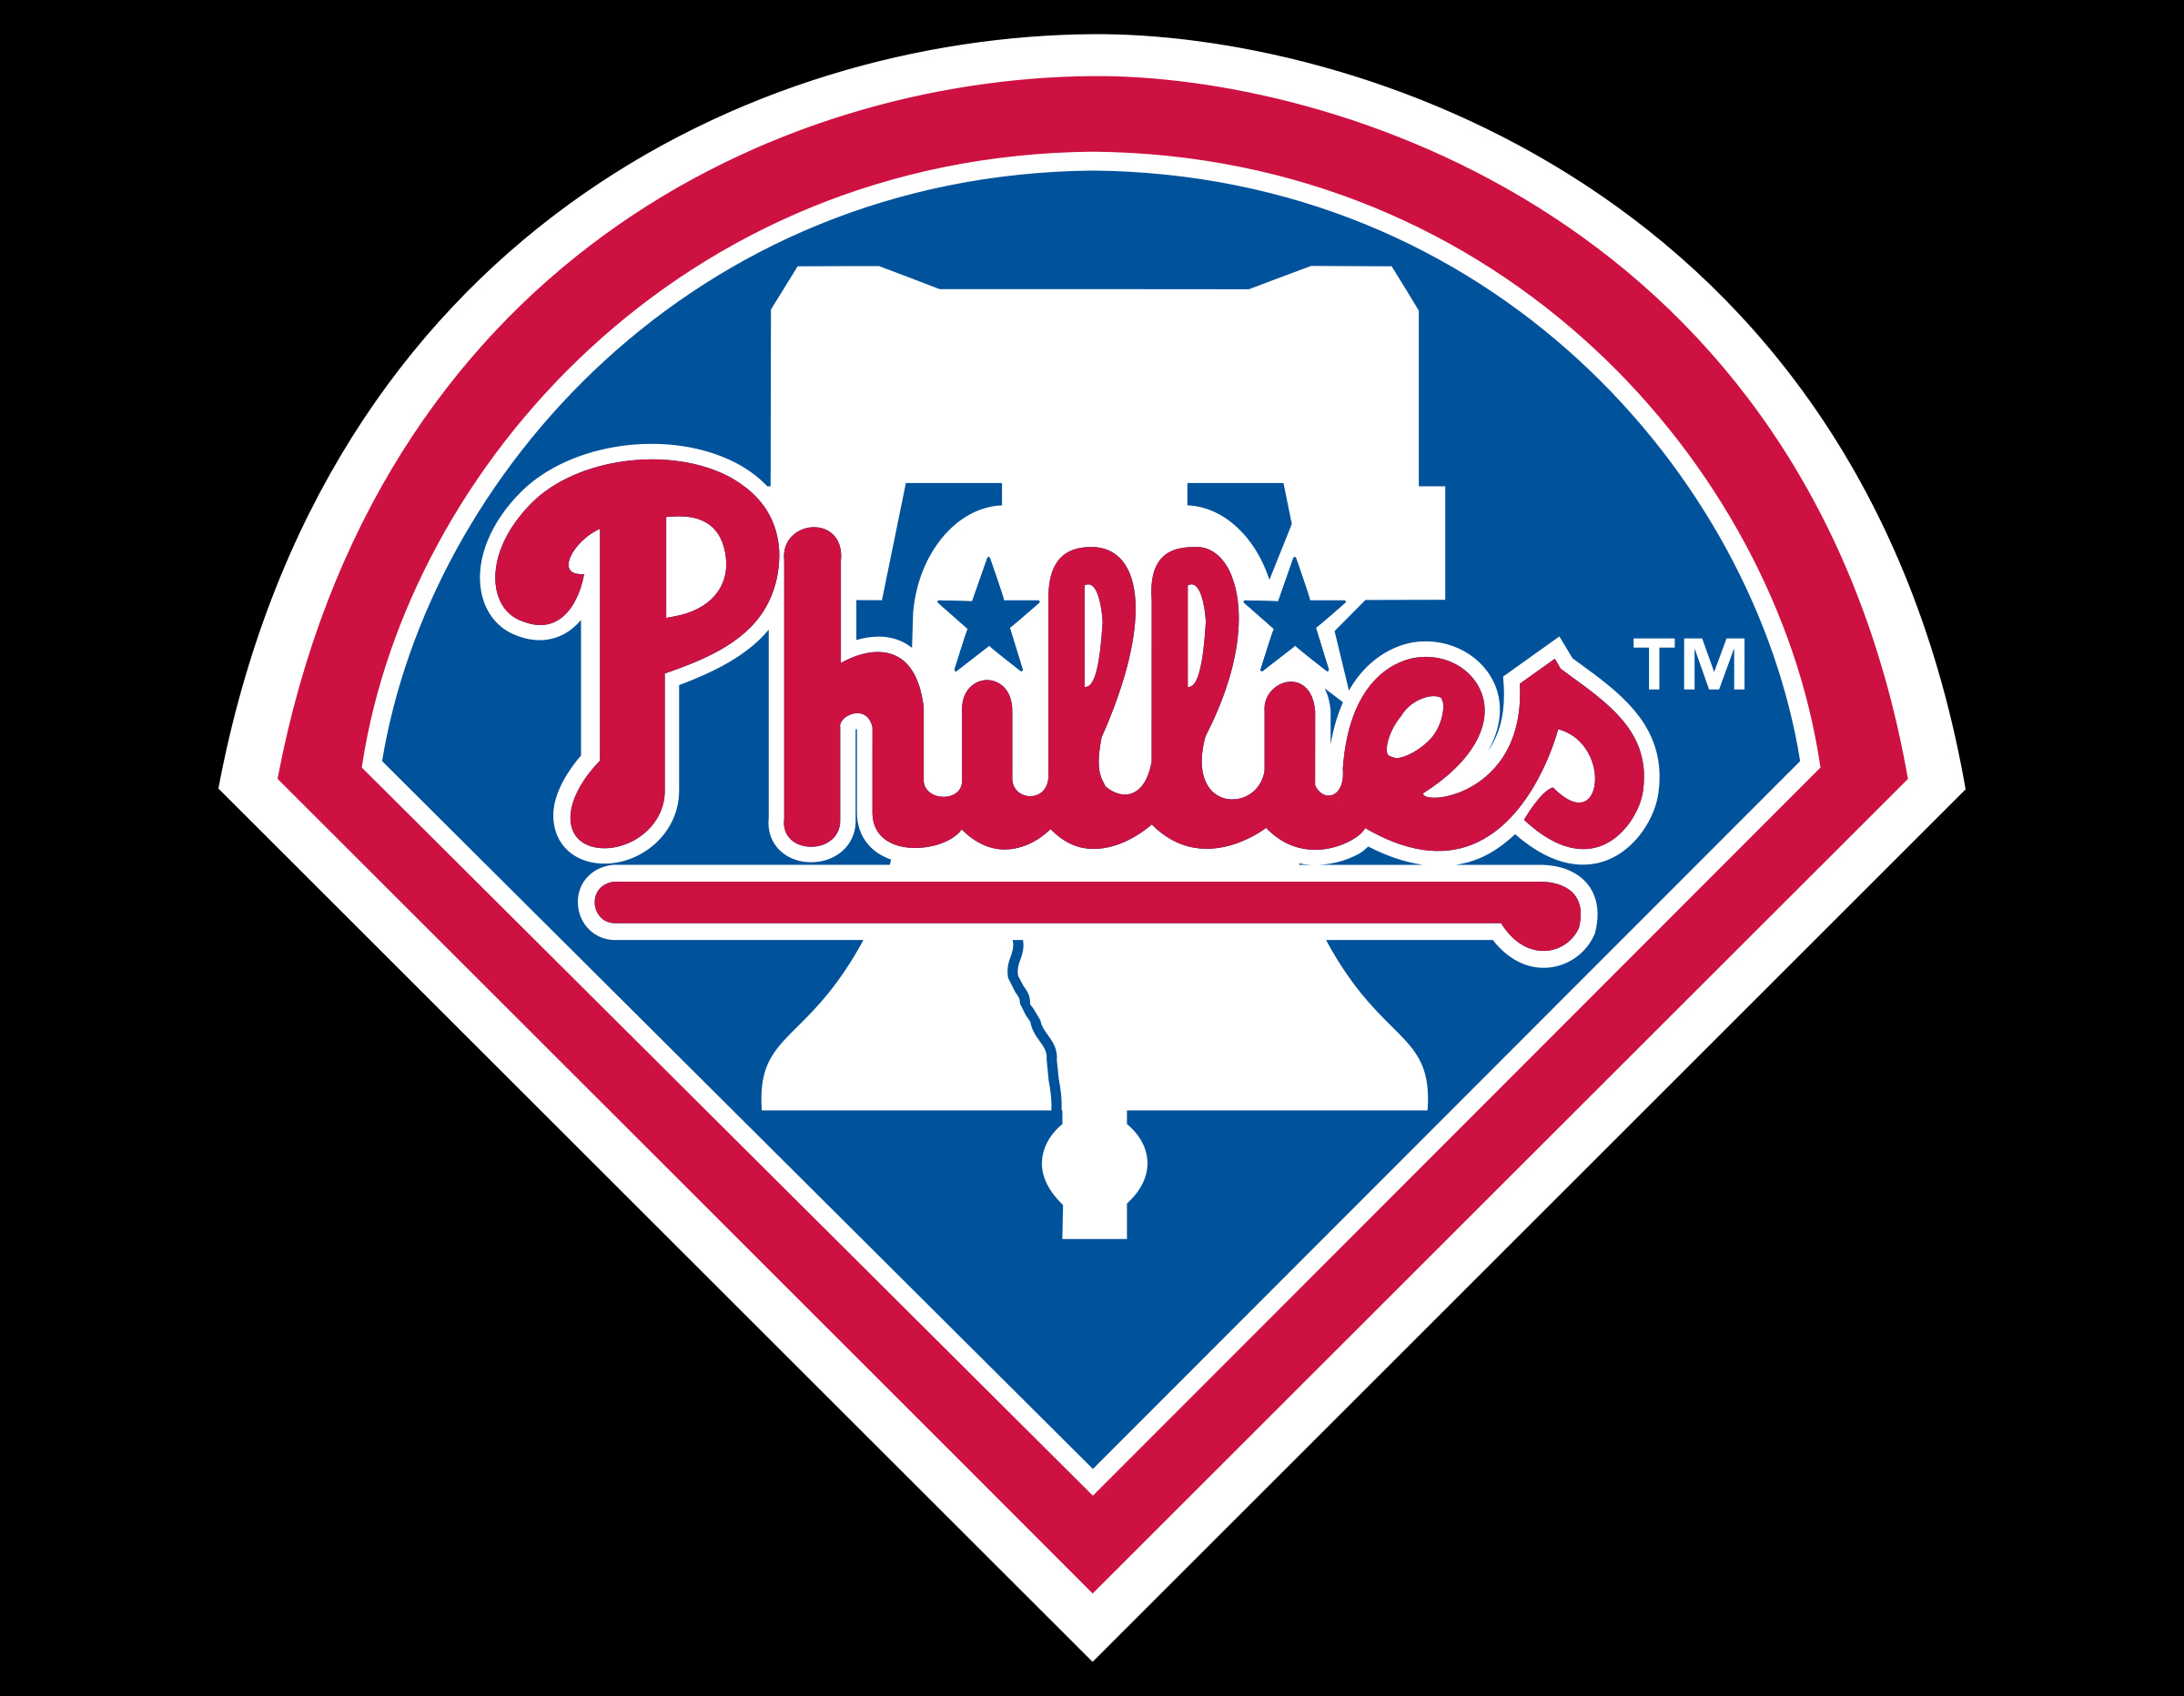 Meaning Philadelphia Phillies logo and symbol.